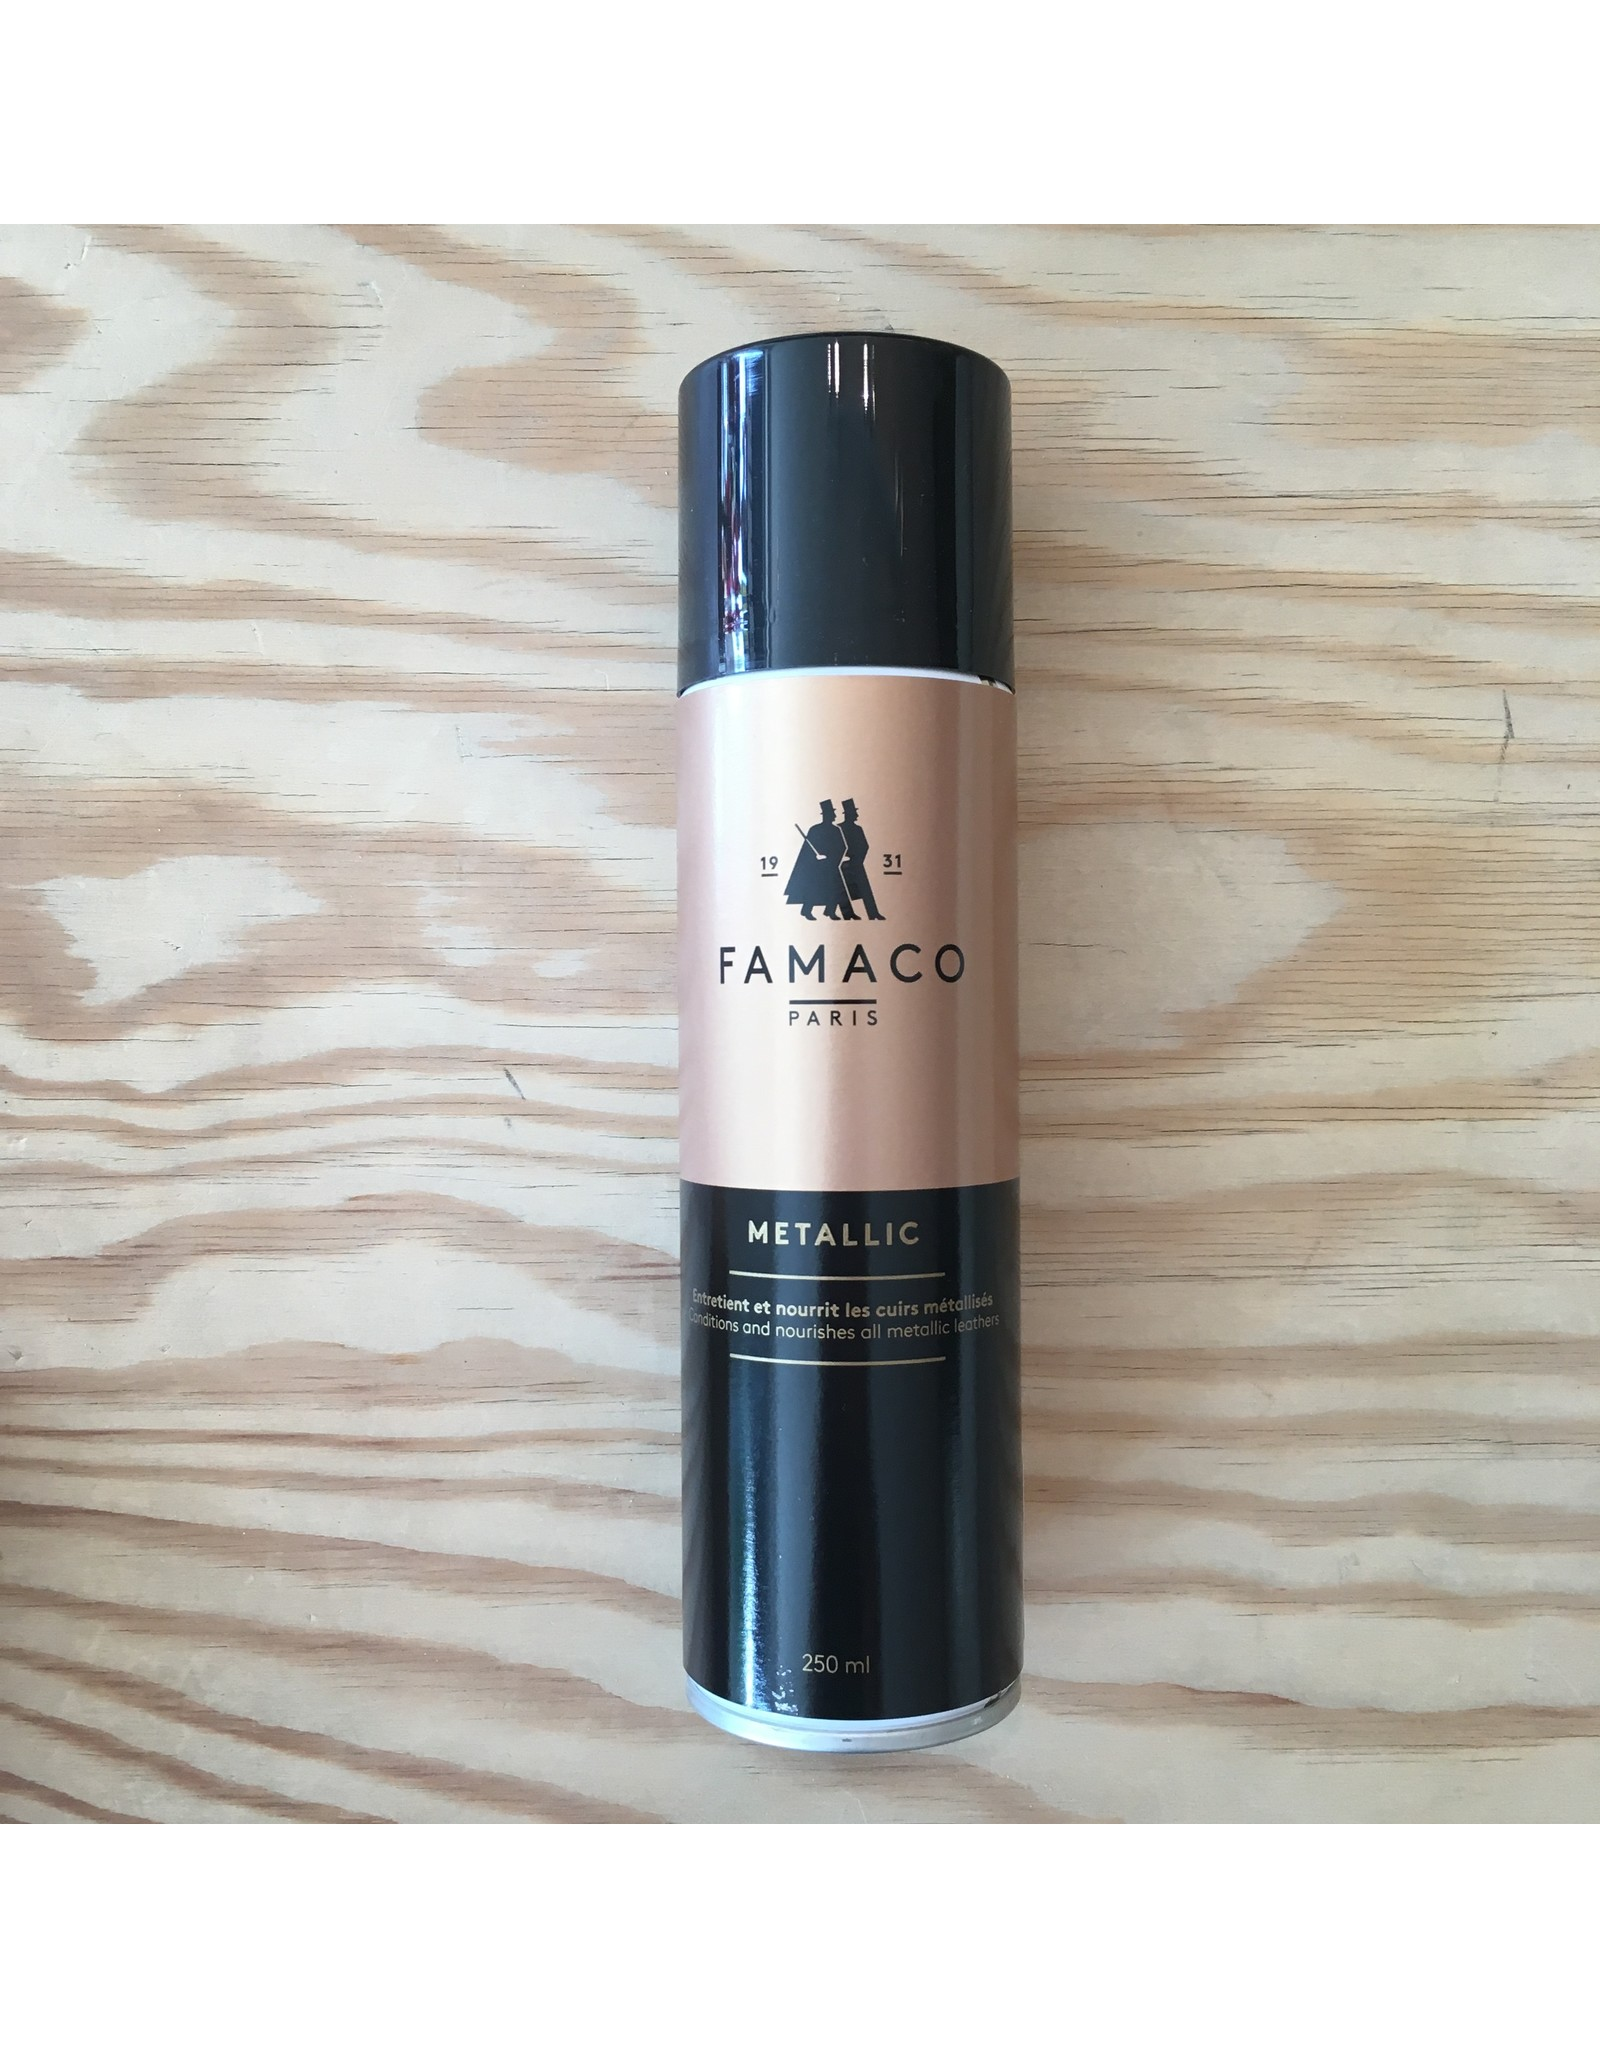 FAMACO FAMACO METALLIC SPRAY 250ml